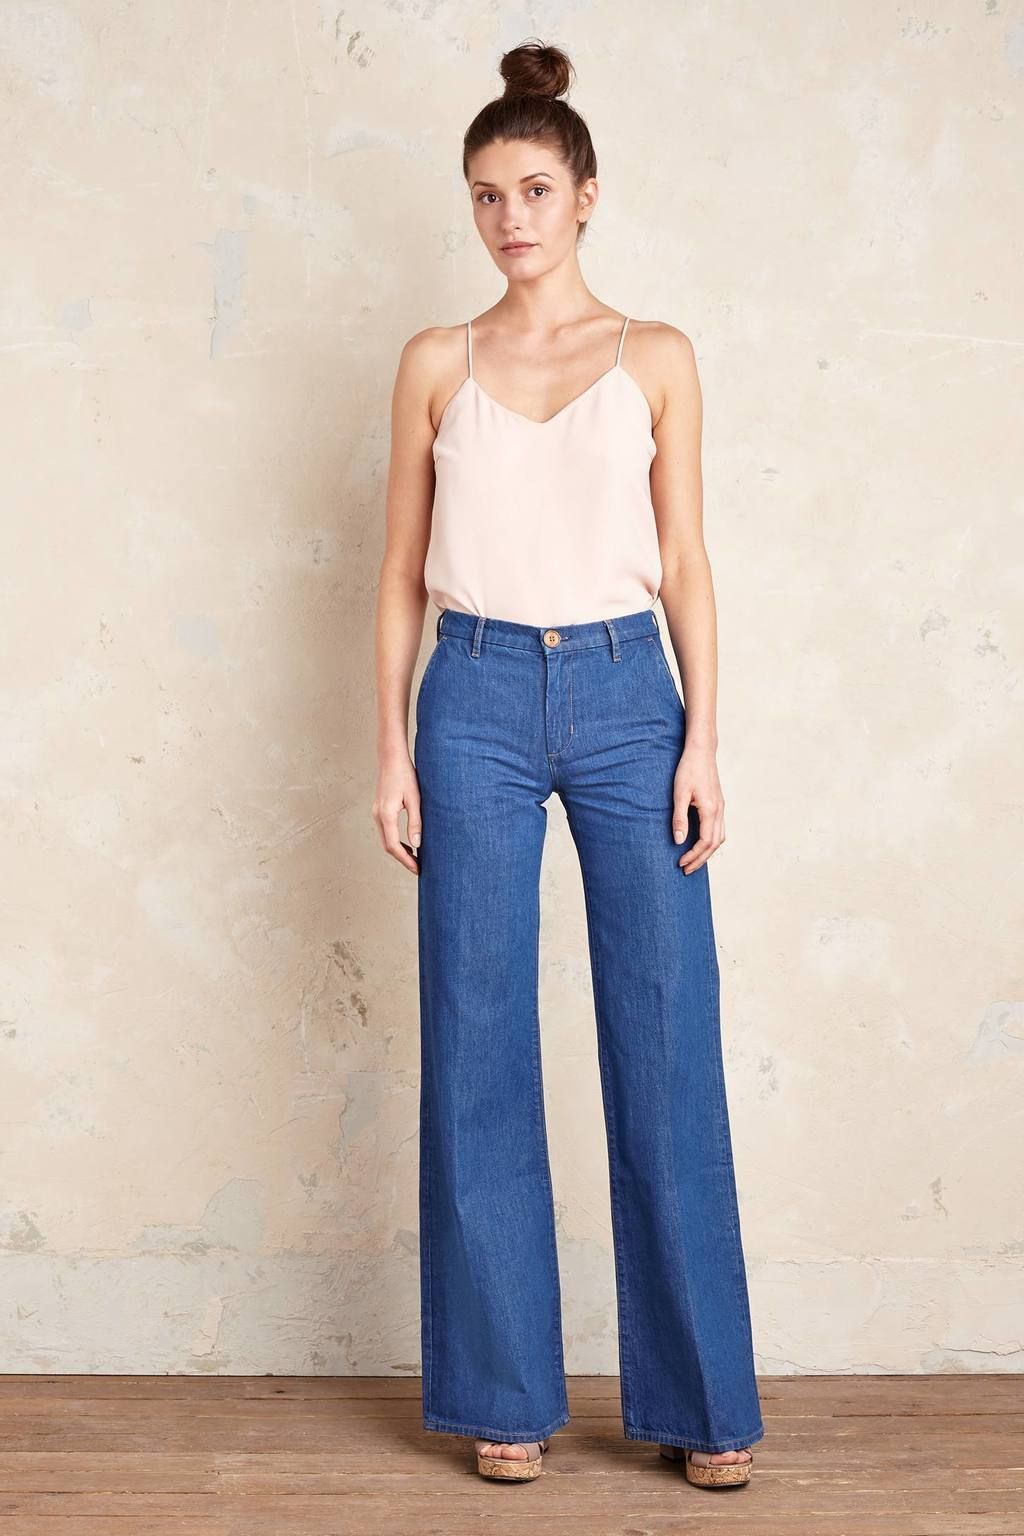 Loom Wide Leg Jeans - length: standard; pattern: plain; waist: high rise; pocket detail: traditional 5 pocket; style: wide leg; predominant colour: denim; occasions: casual, creative work; fibres: cotton - stretch; texture group: denim; pattern type: fabric; season: s/s 2016; wardrobe: basic